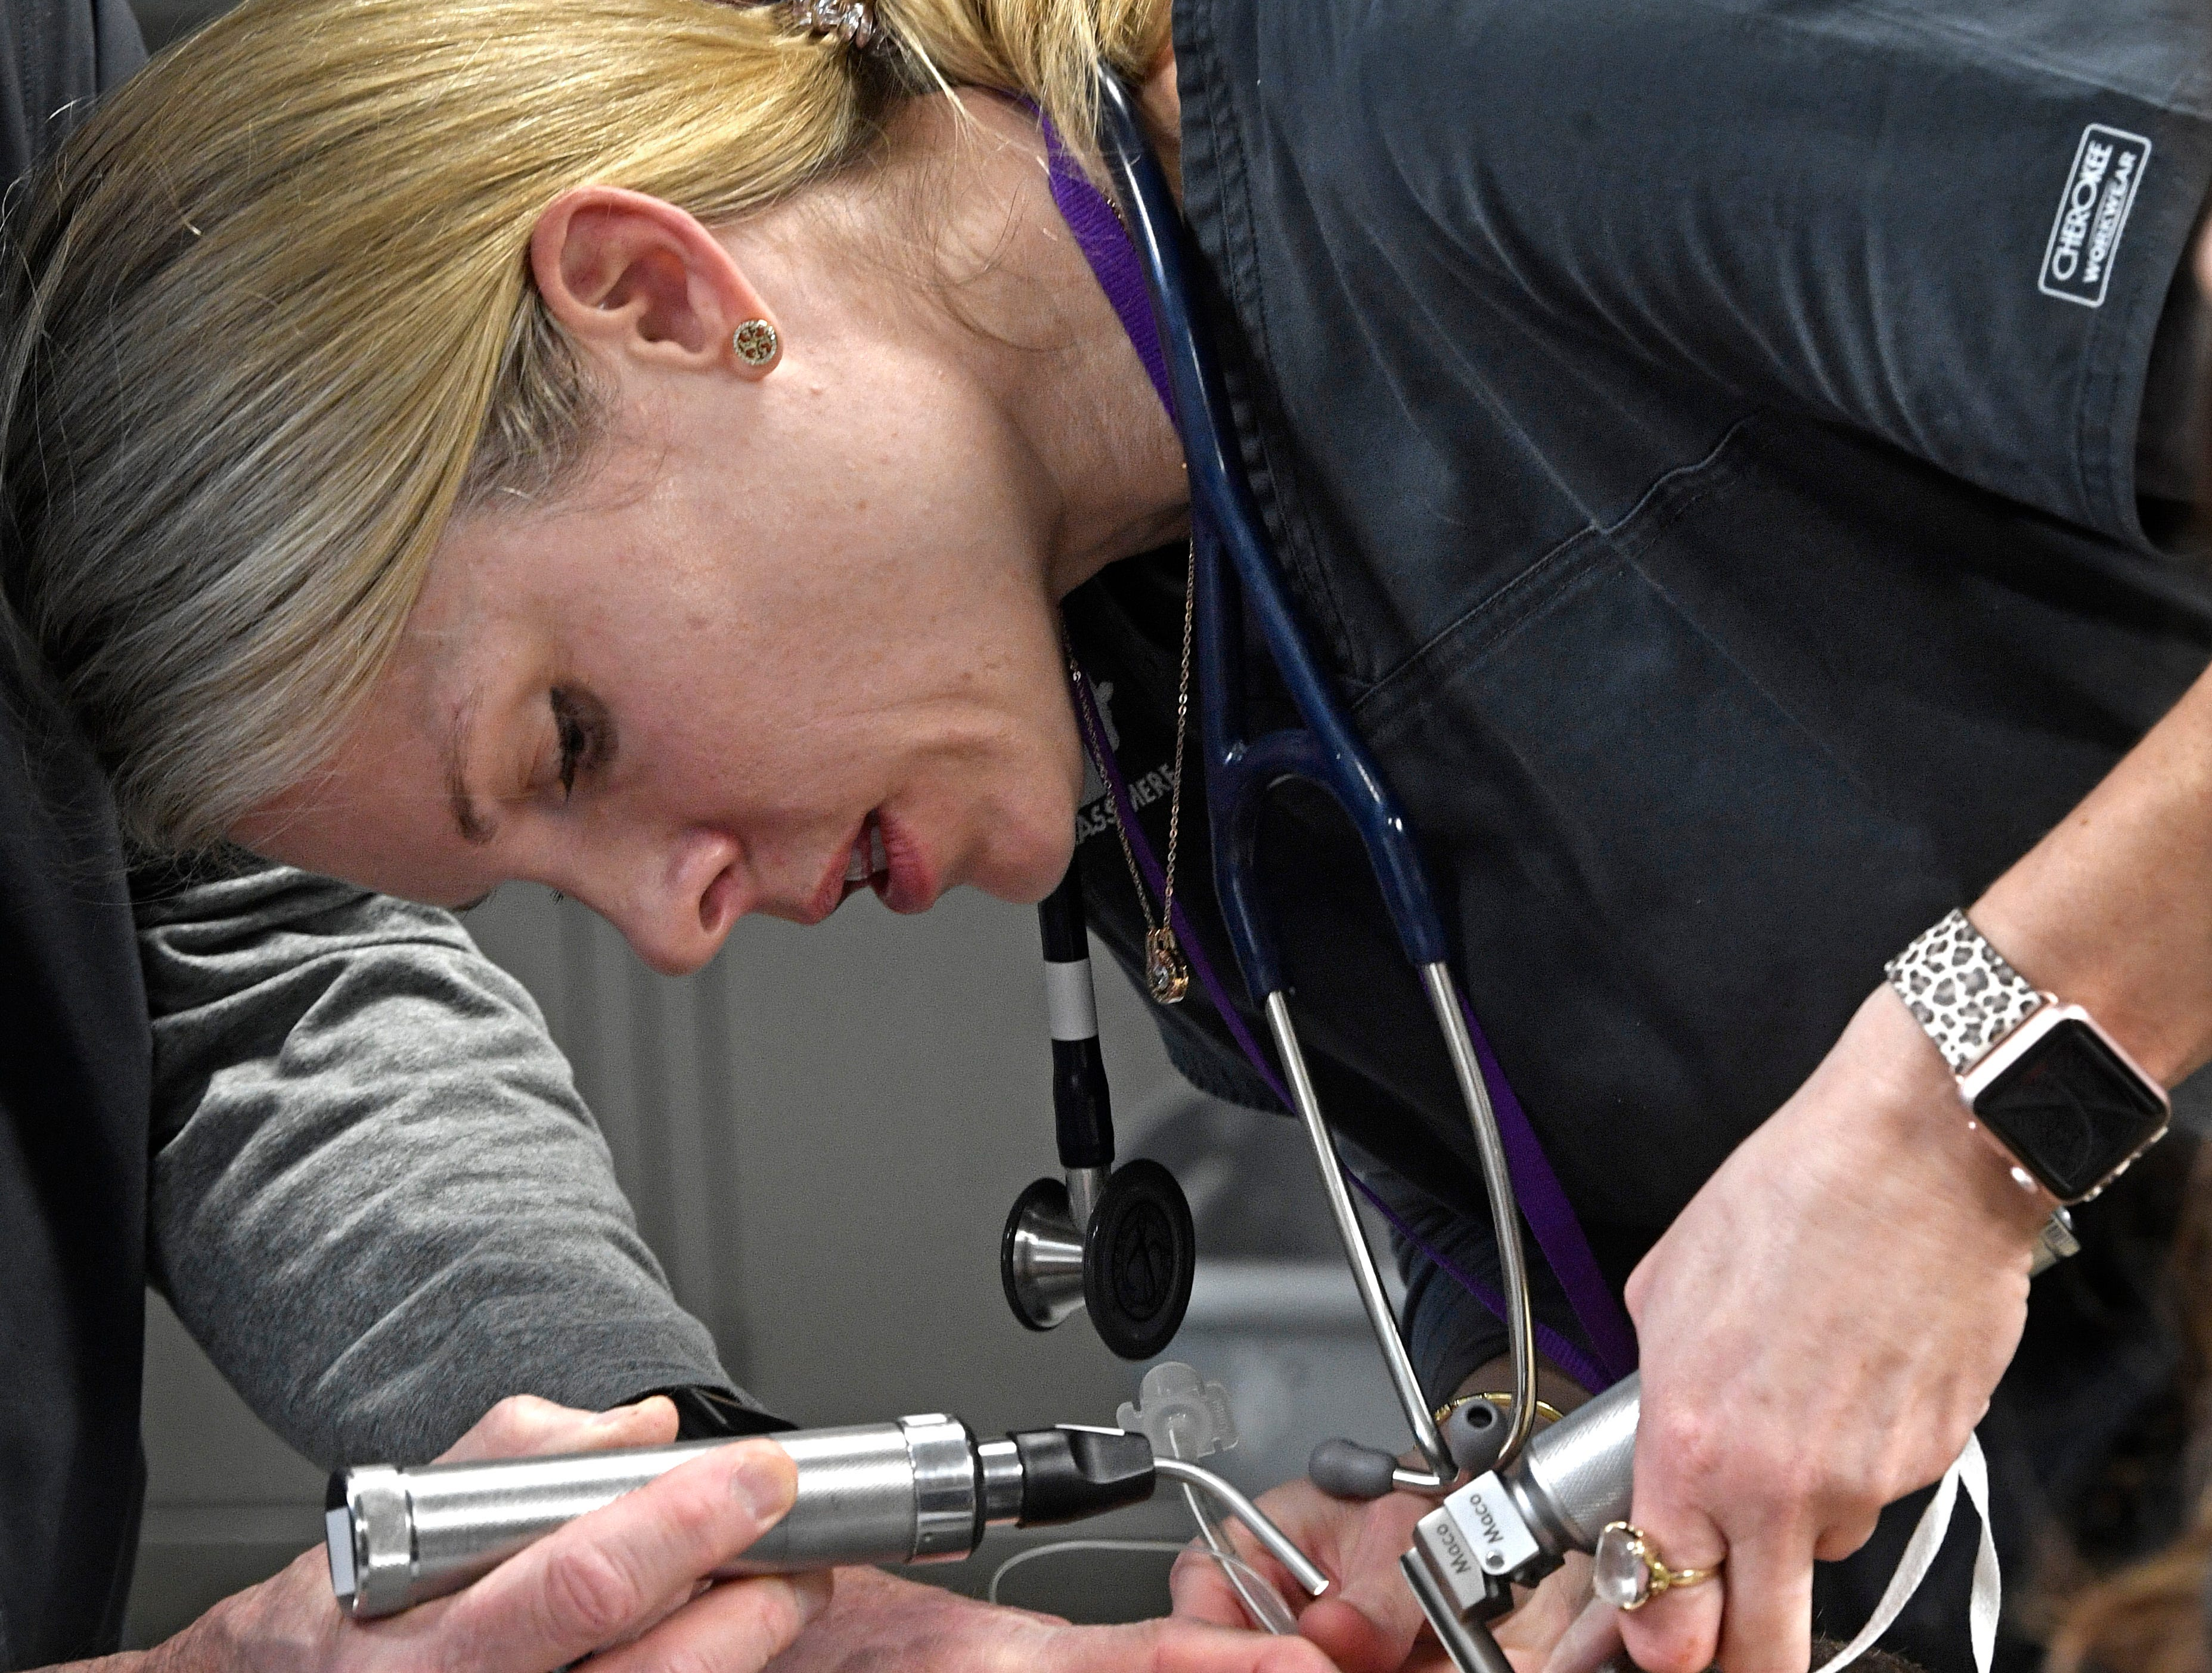 Dr. Heather Robertson, Dir. of Veterinary Services, does a check-up on a sloth at the new 23,000 square-foot HCA Healthcare Veterinary Center at the Nashville Zoo.